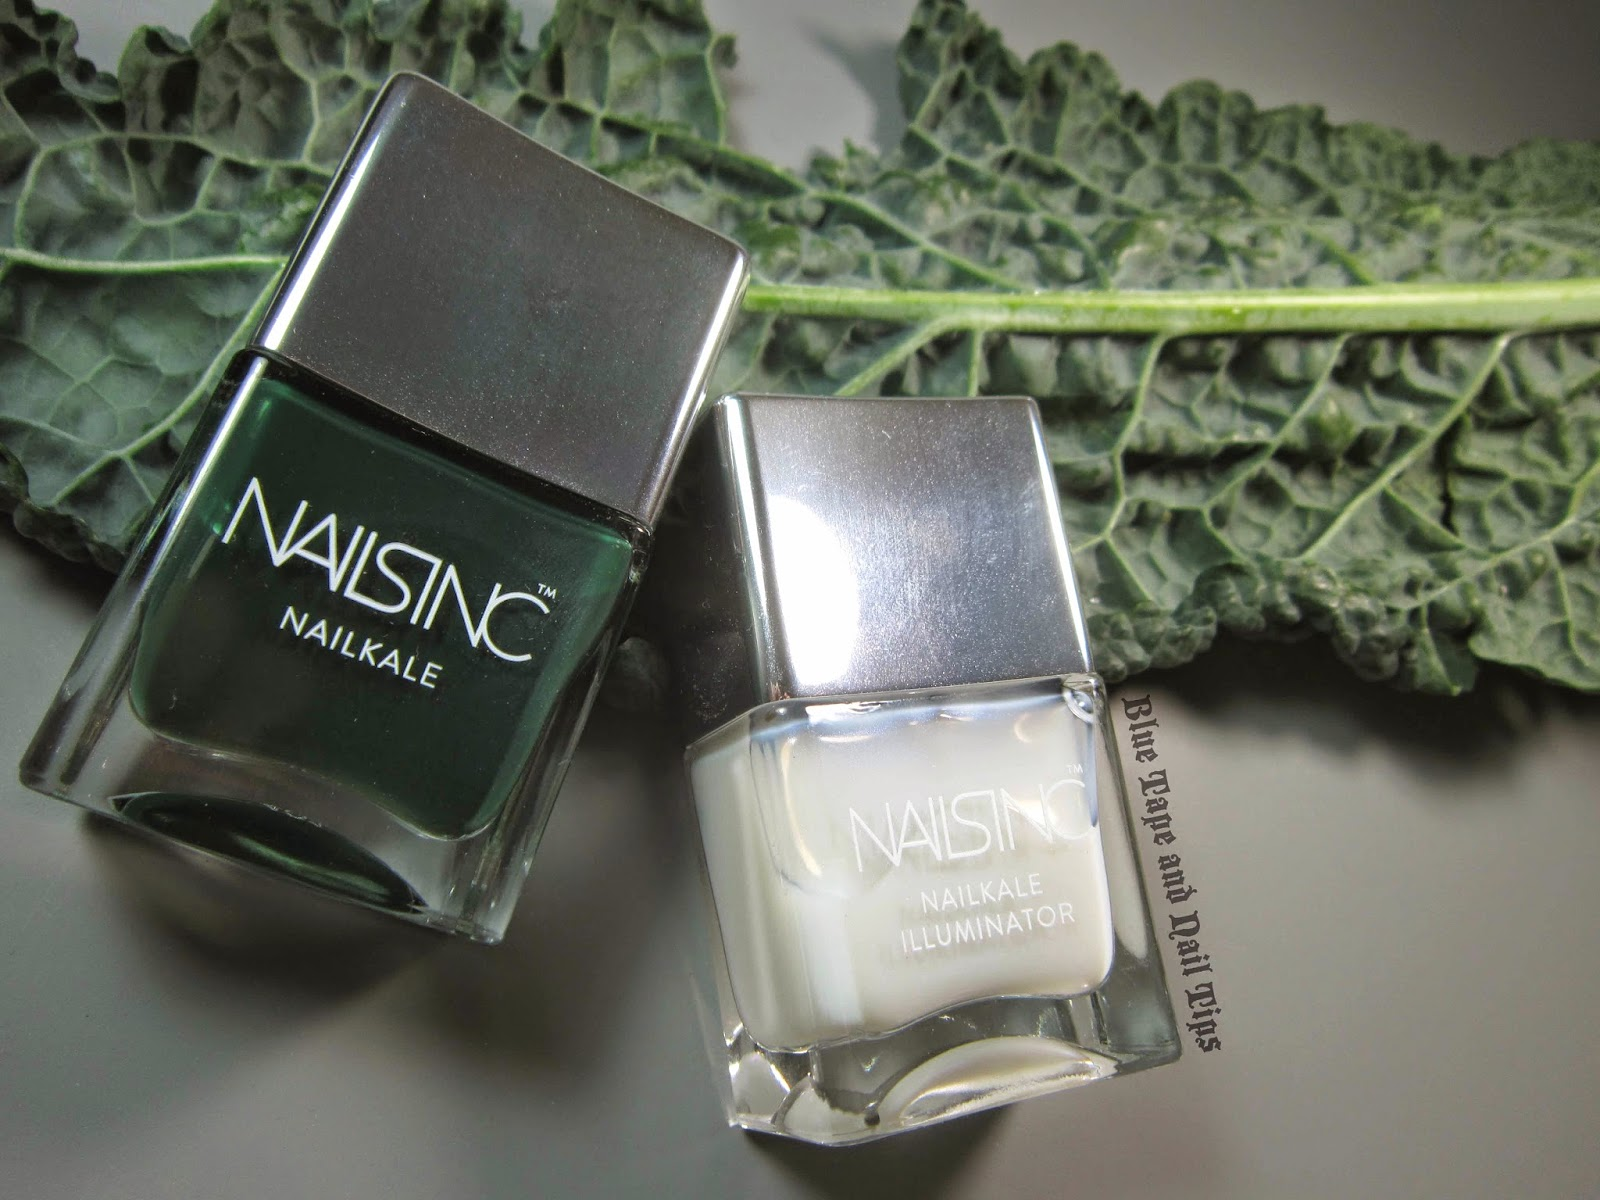 Blue Tape and Nail Tips: Nails Inc NailKale and Illuminator Review